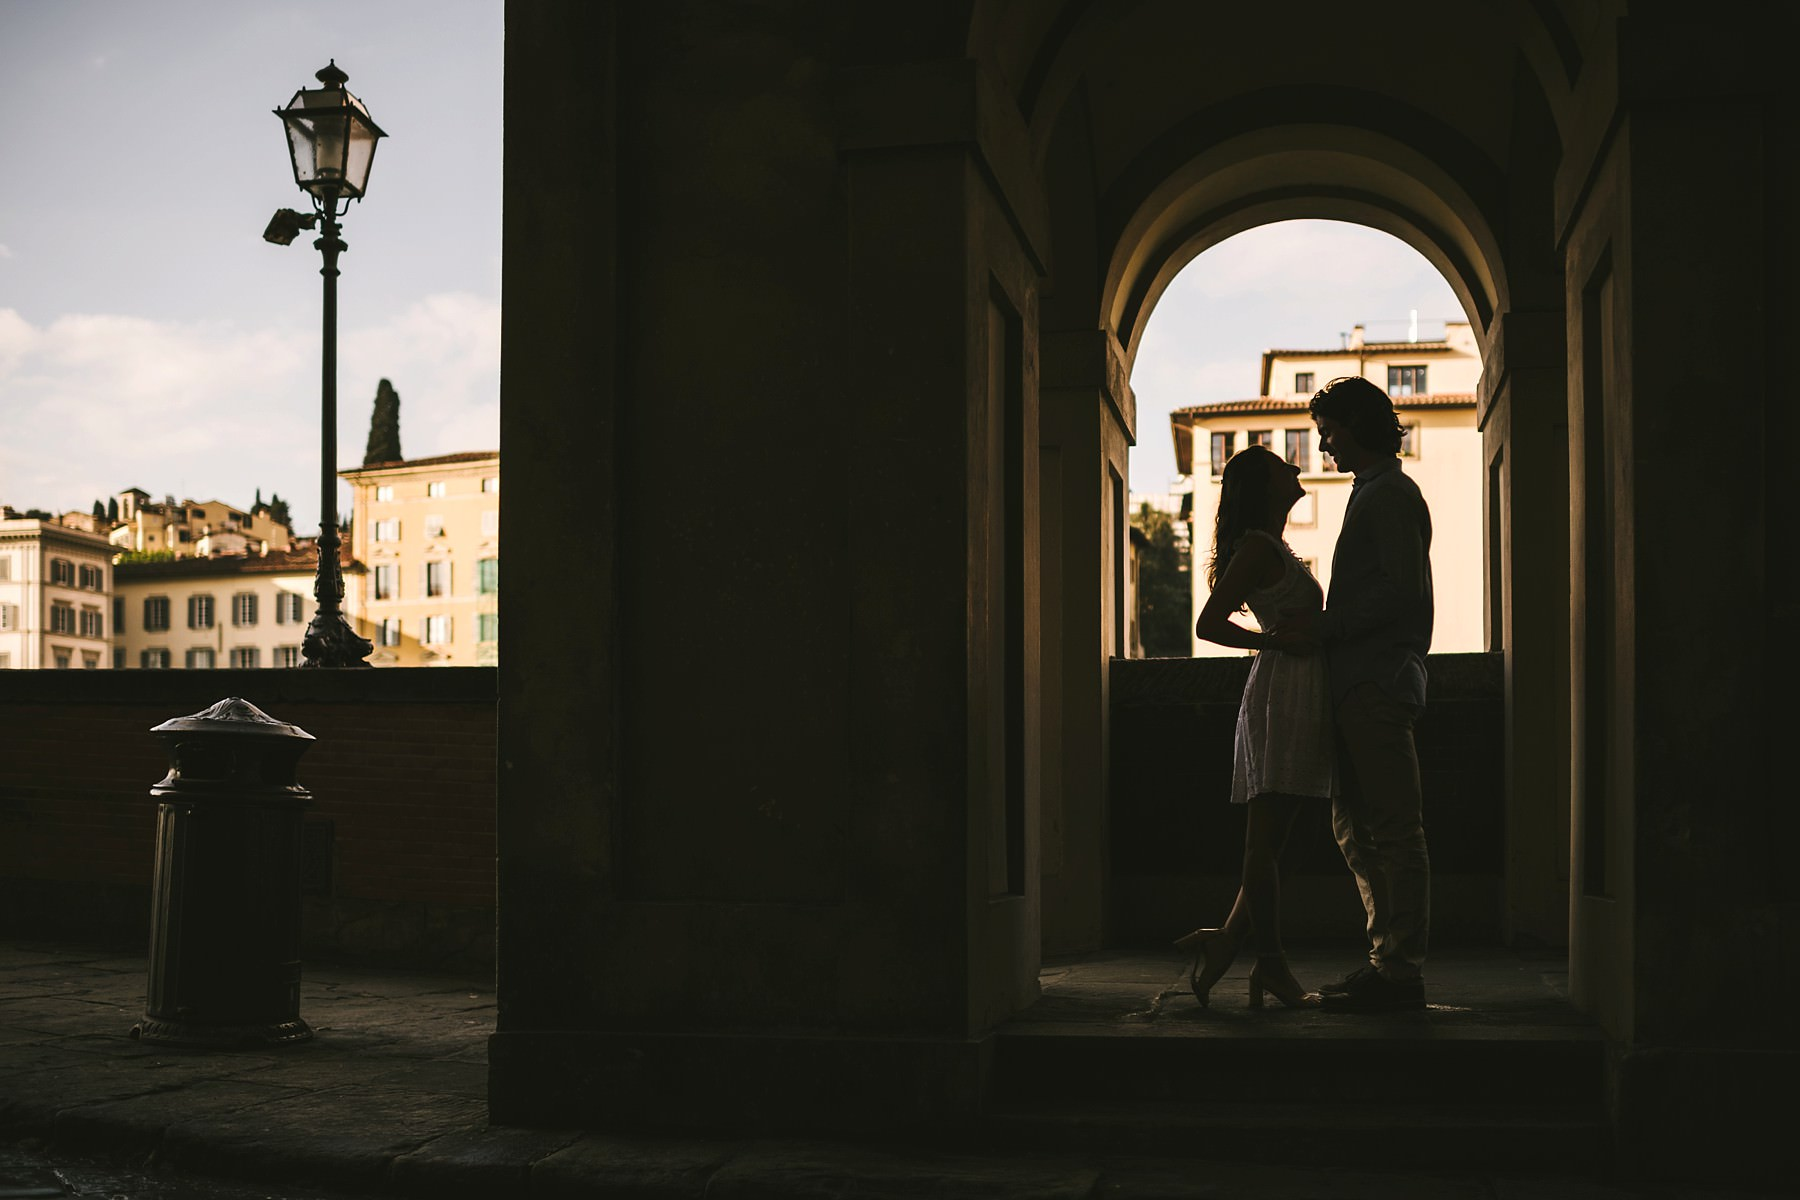 Lovely pre wedding photoshoot in Florence at sunrise. Creative and artistic pre wedding engagement photoshoot experience in Florence in the delicate atmosphere of the sunrise